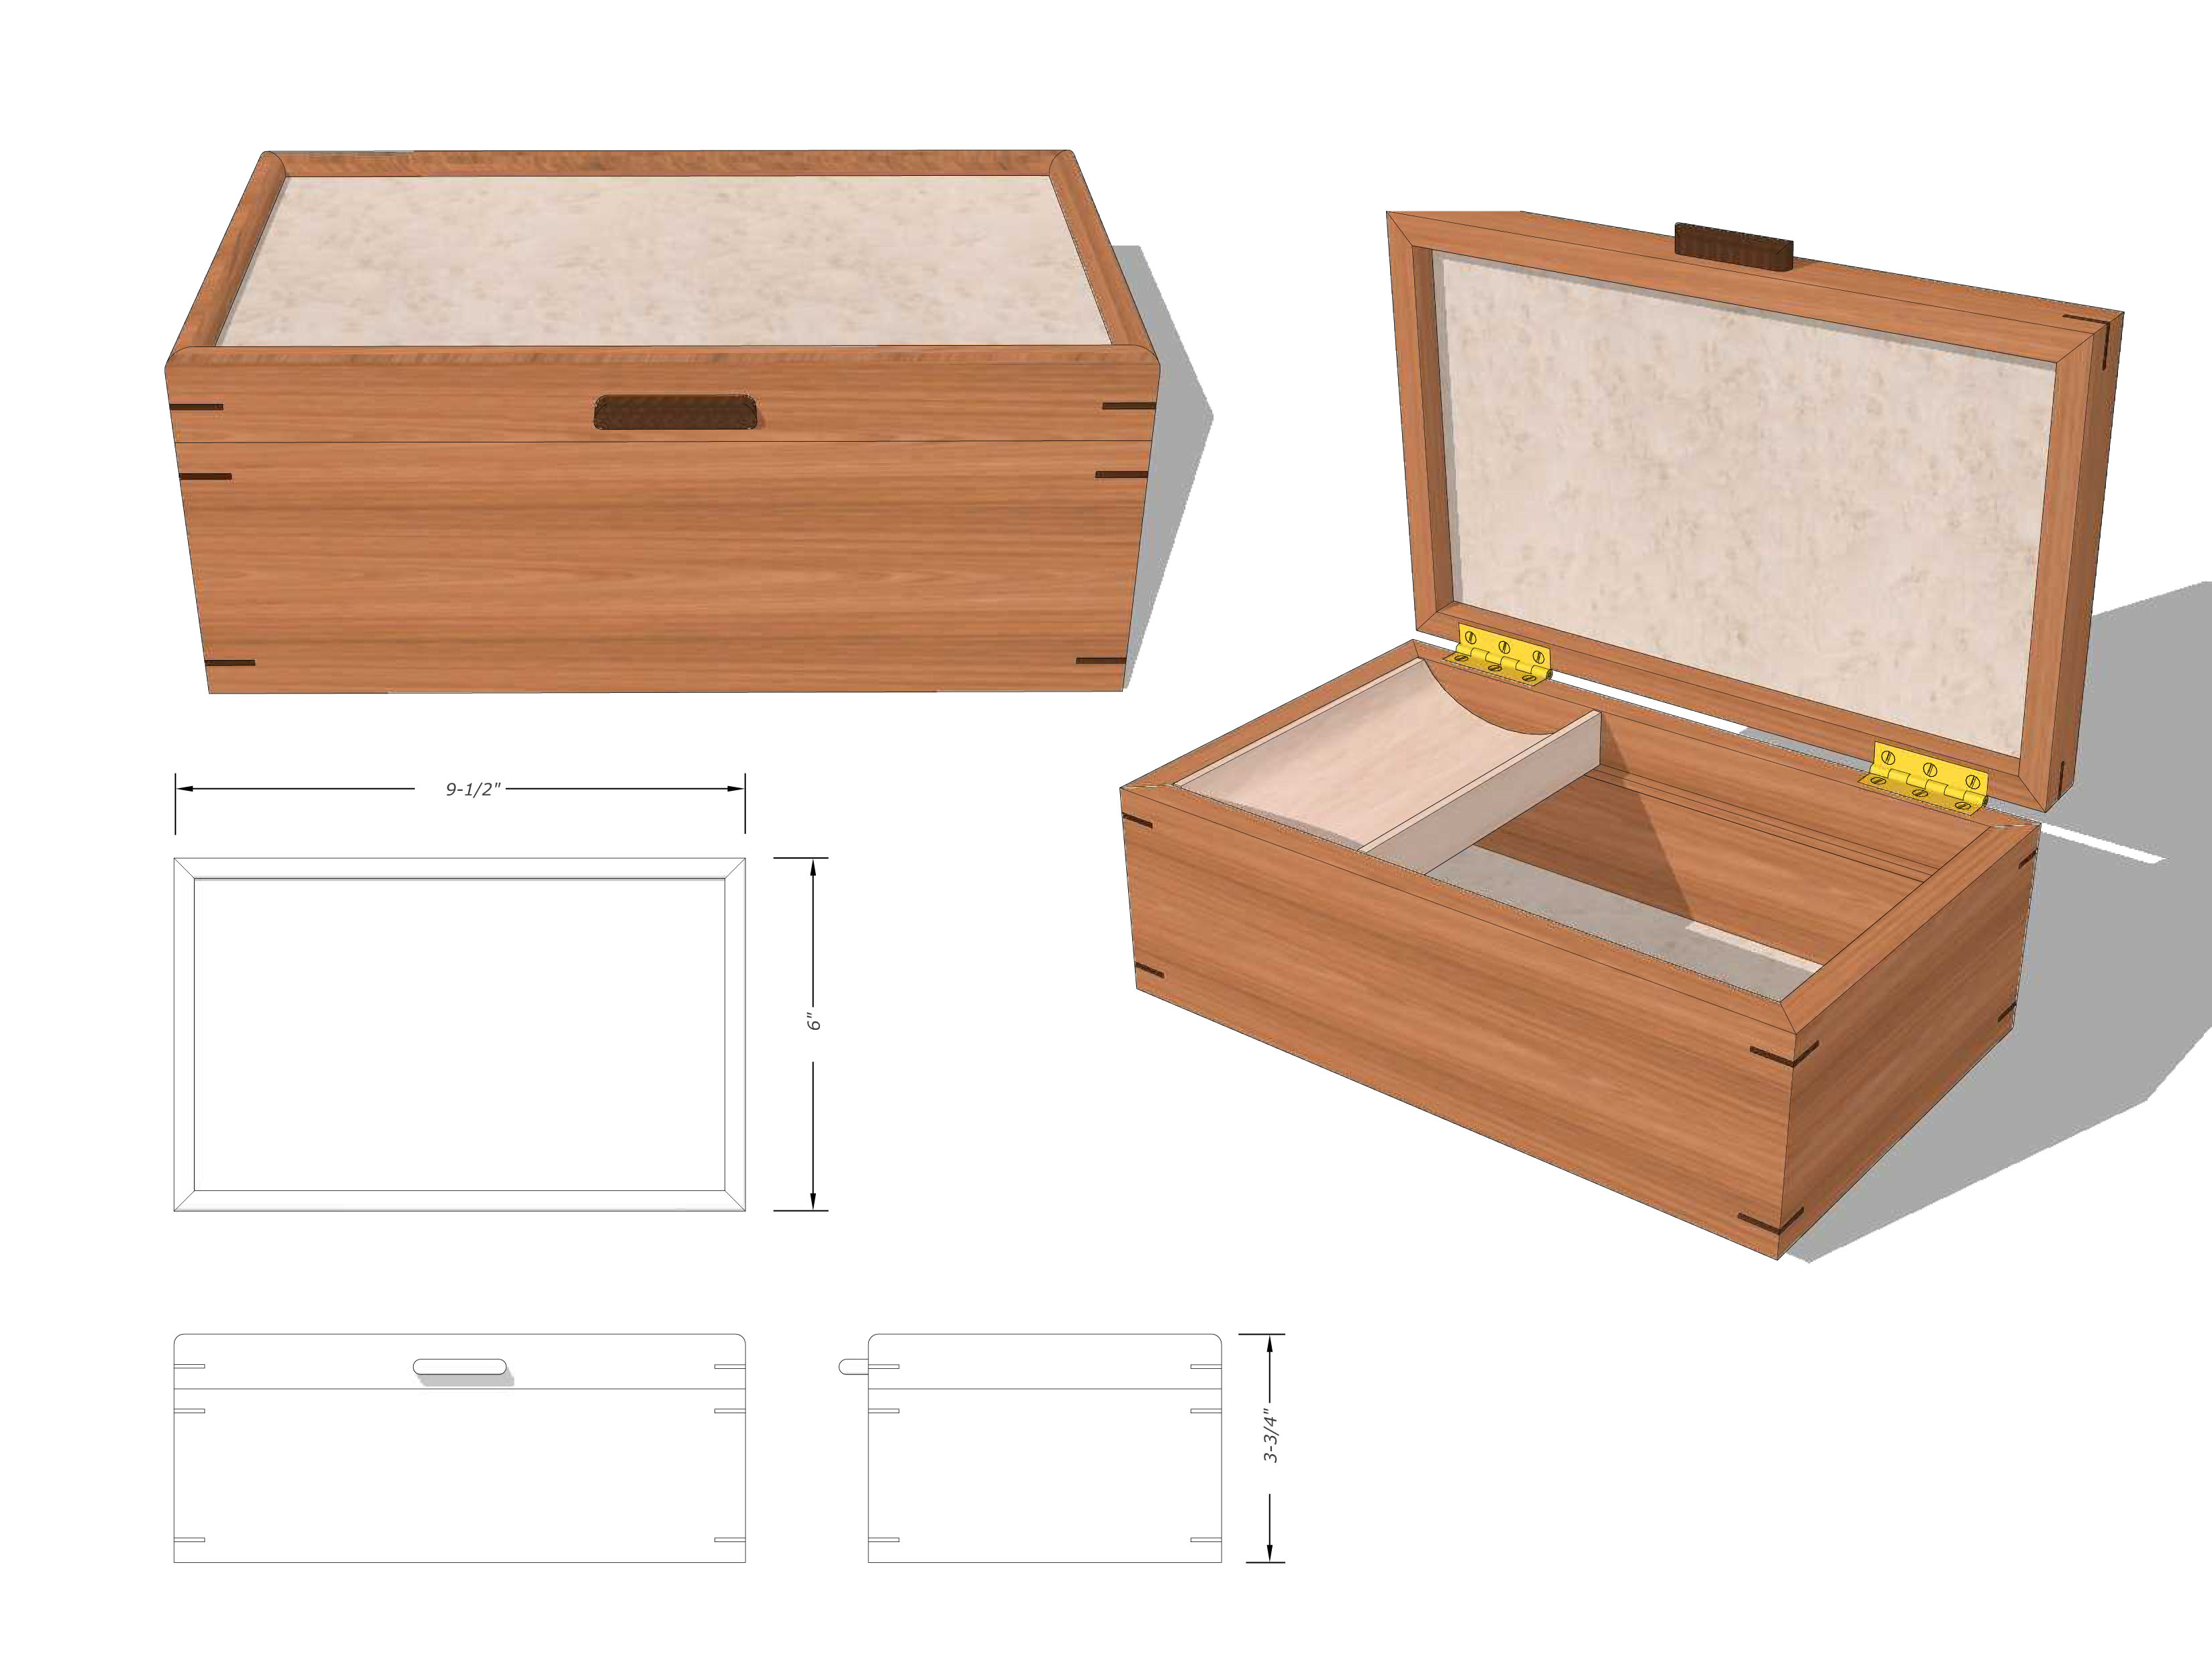 Woodworking Class Build a Jewelry Box Woodworkers Source Blog